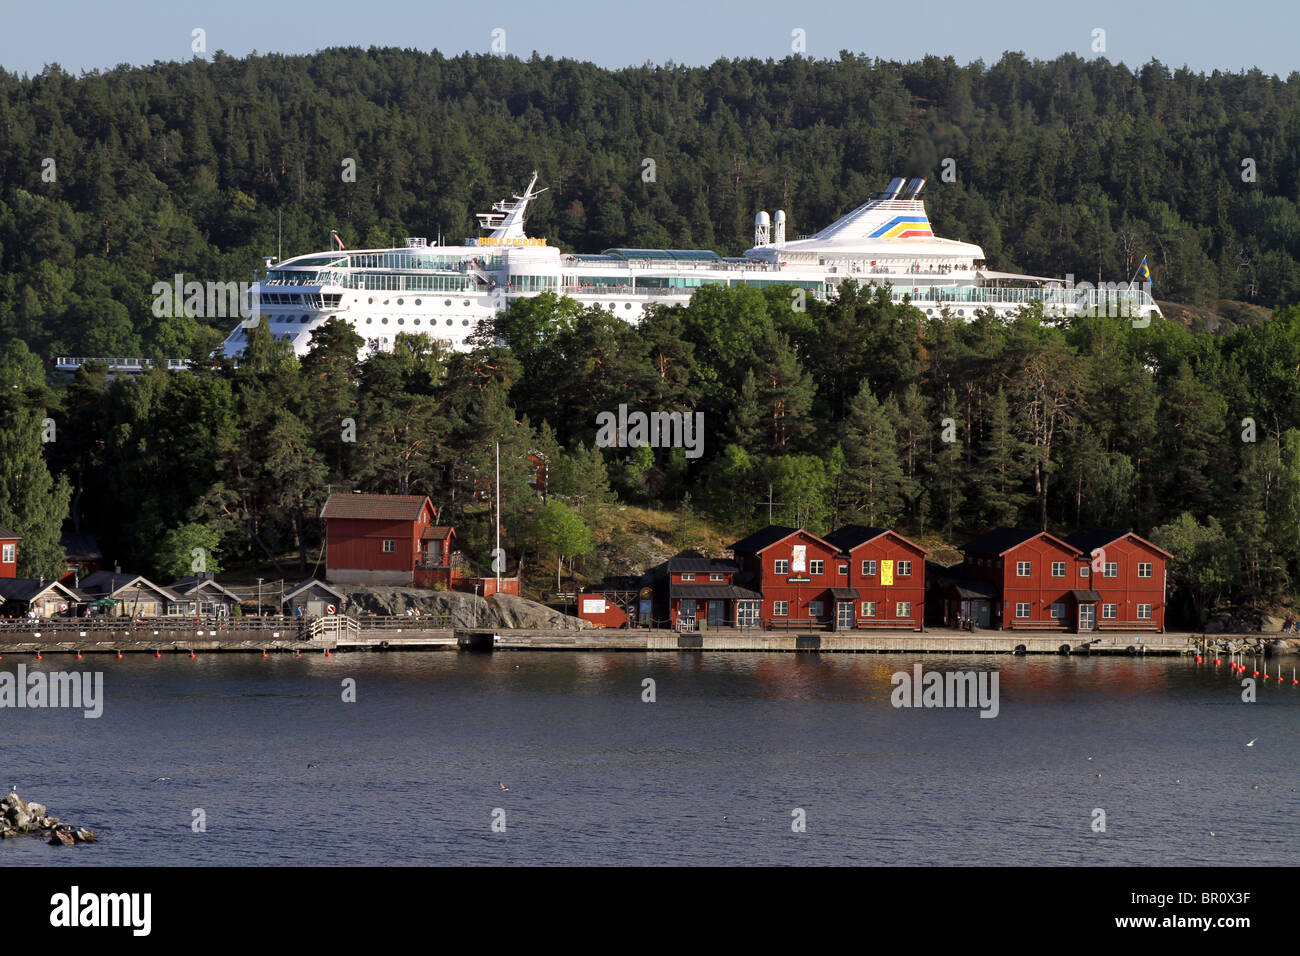 Birka Paradise Cruise Ship in the Stockholm Archipelago in Stockholm, Sweden - Stock Image